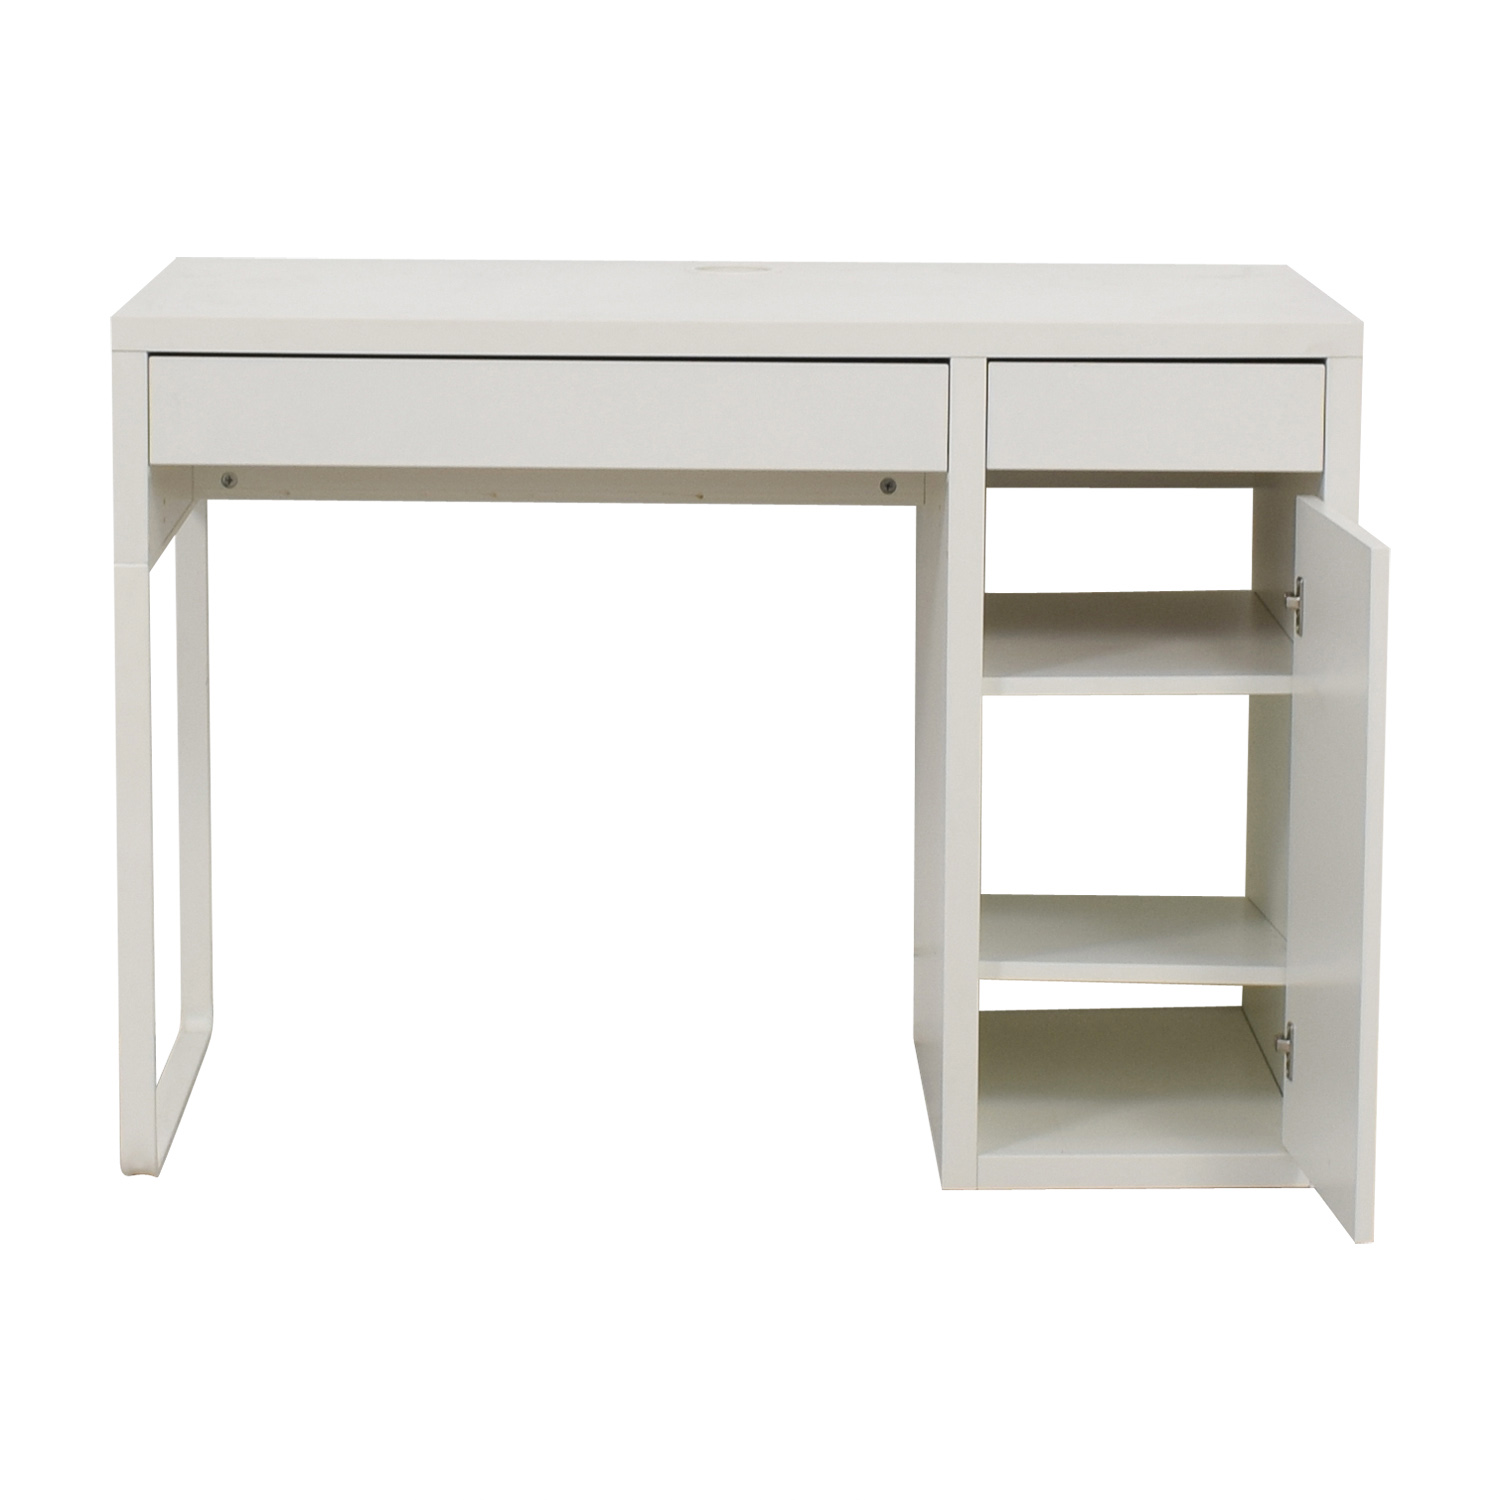 IKEA IKEA White Desk on sale